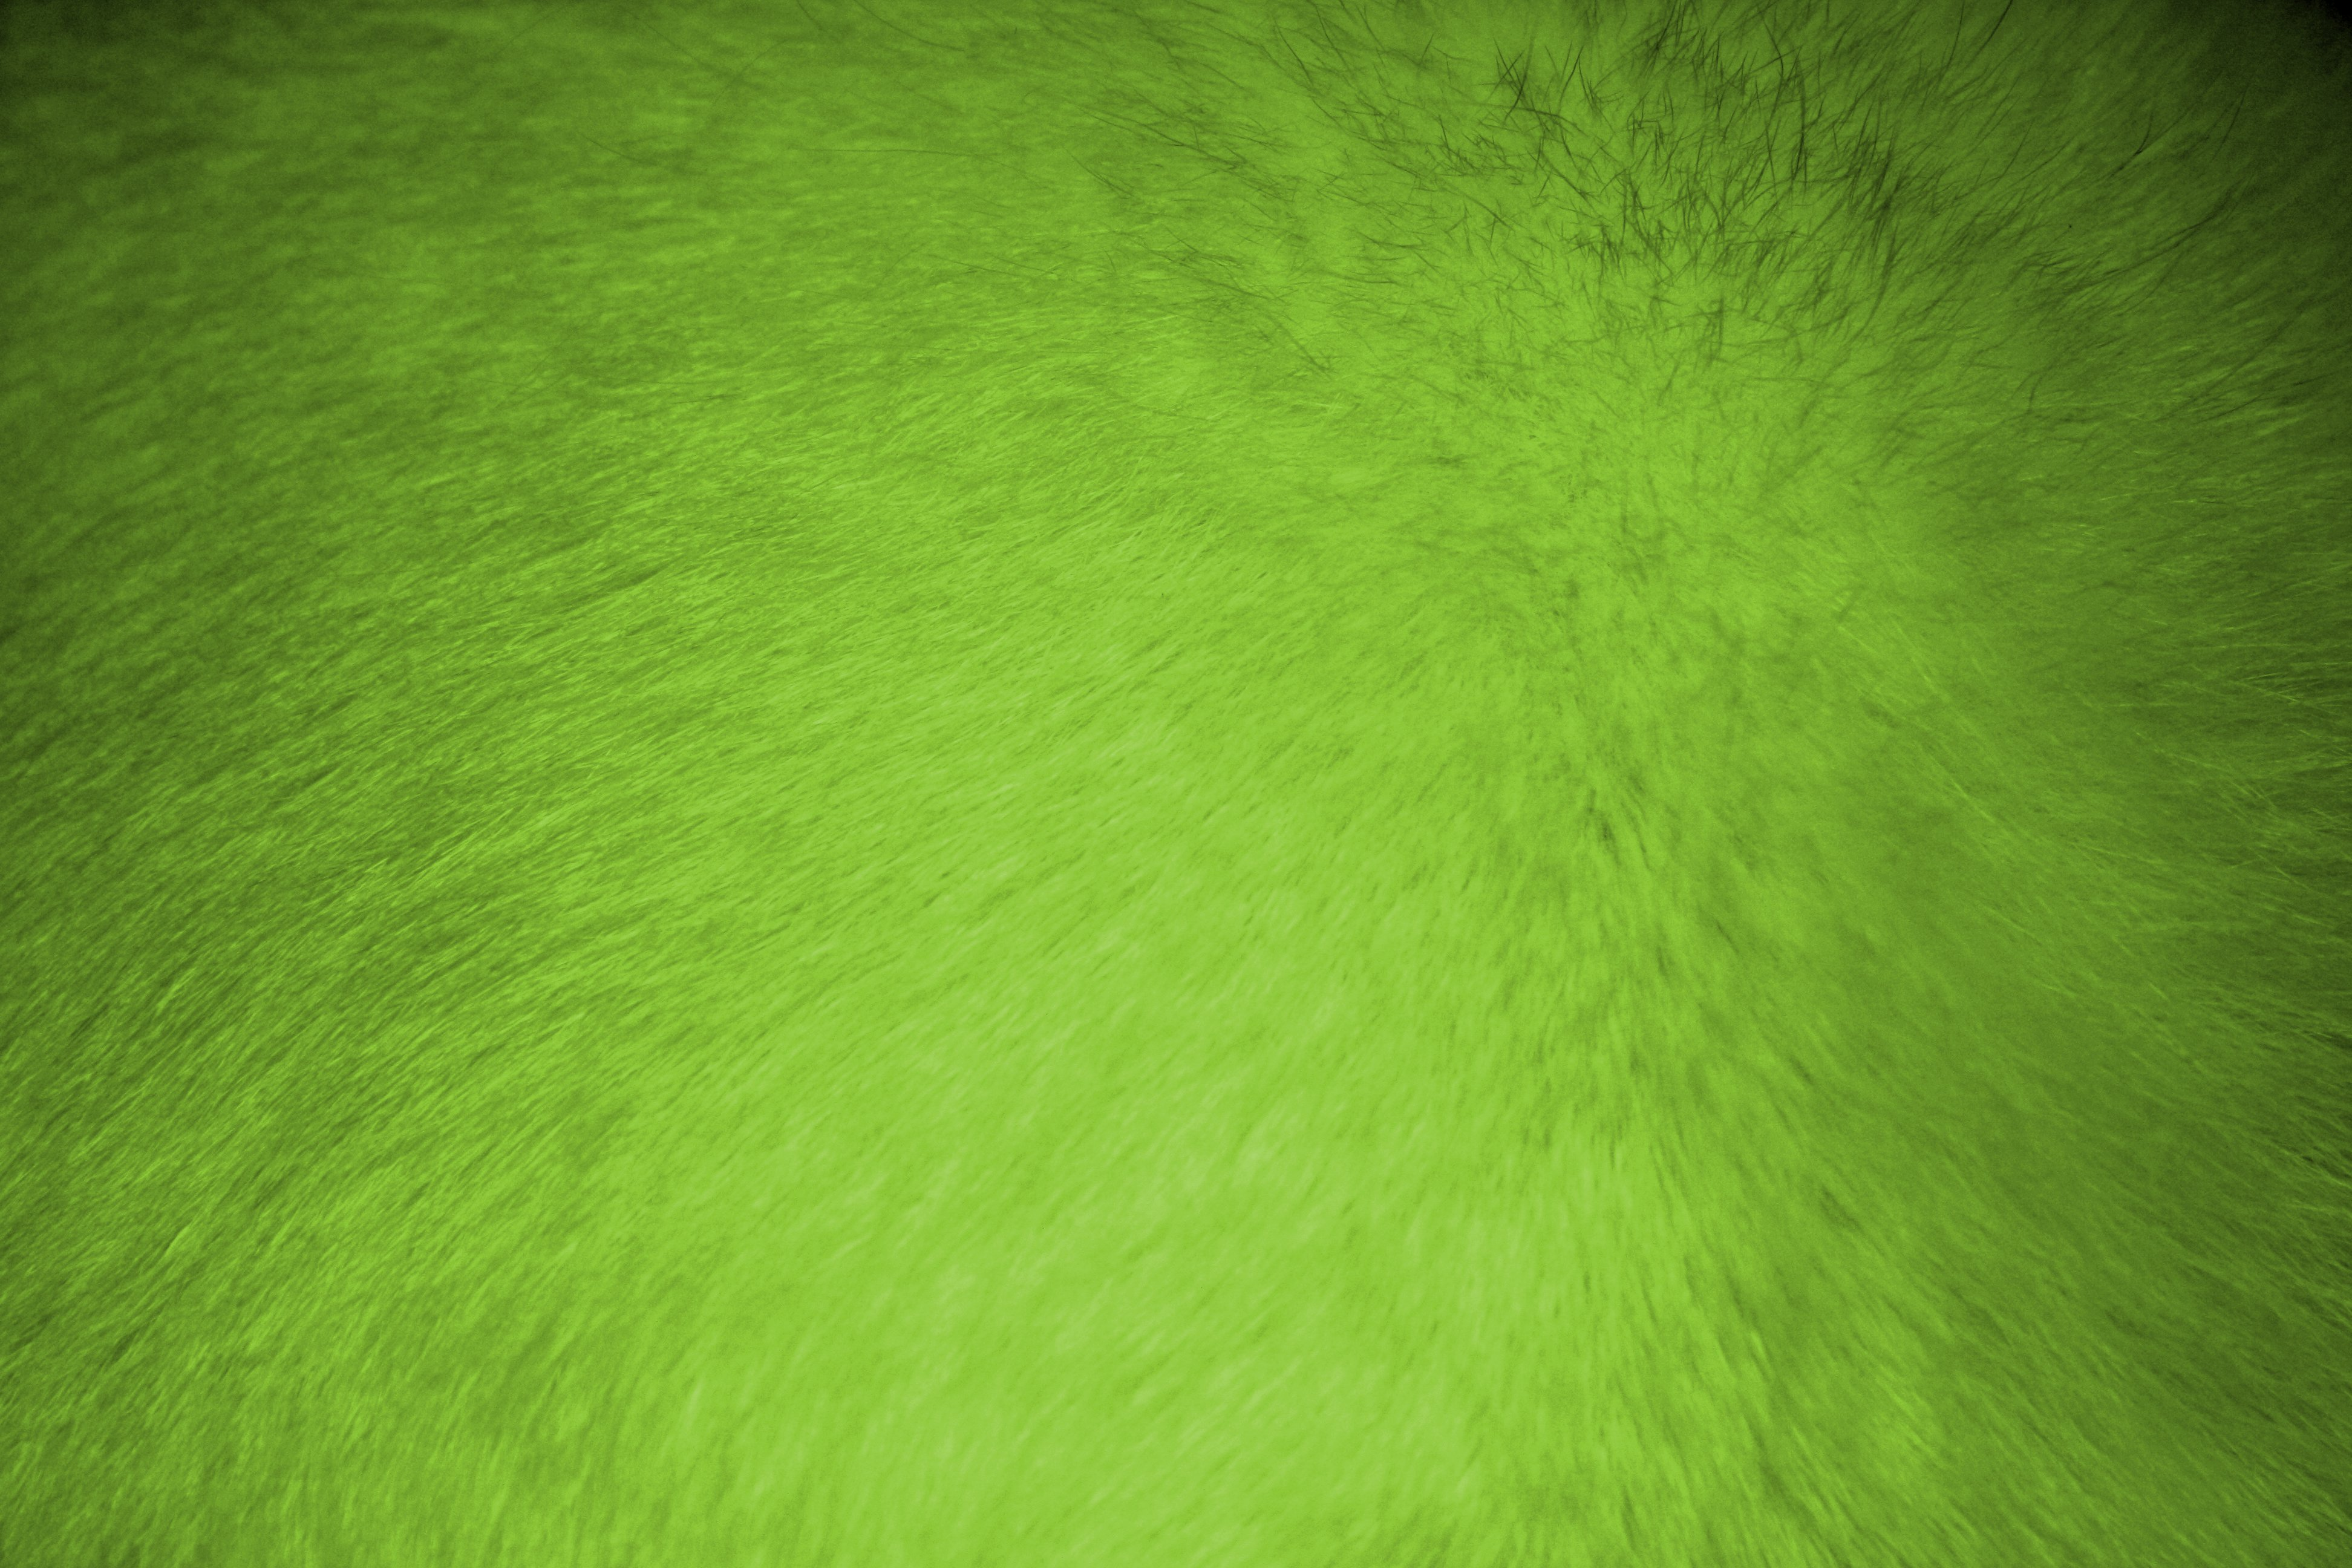 lime green fur texture picture